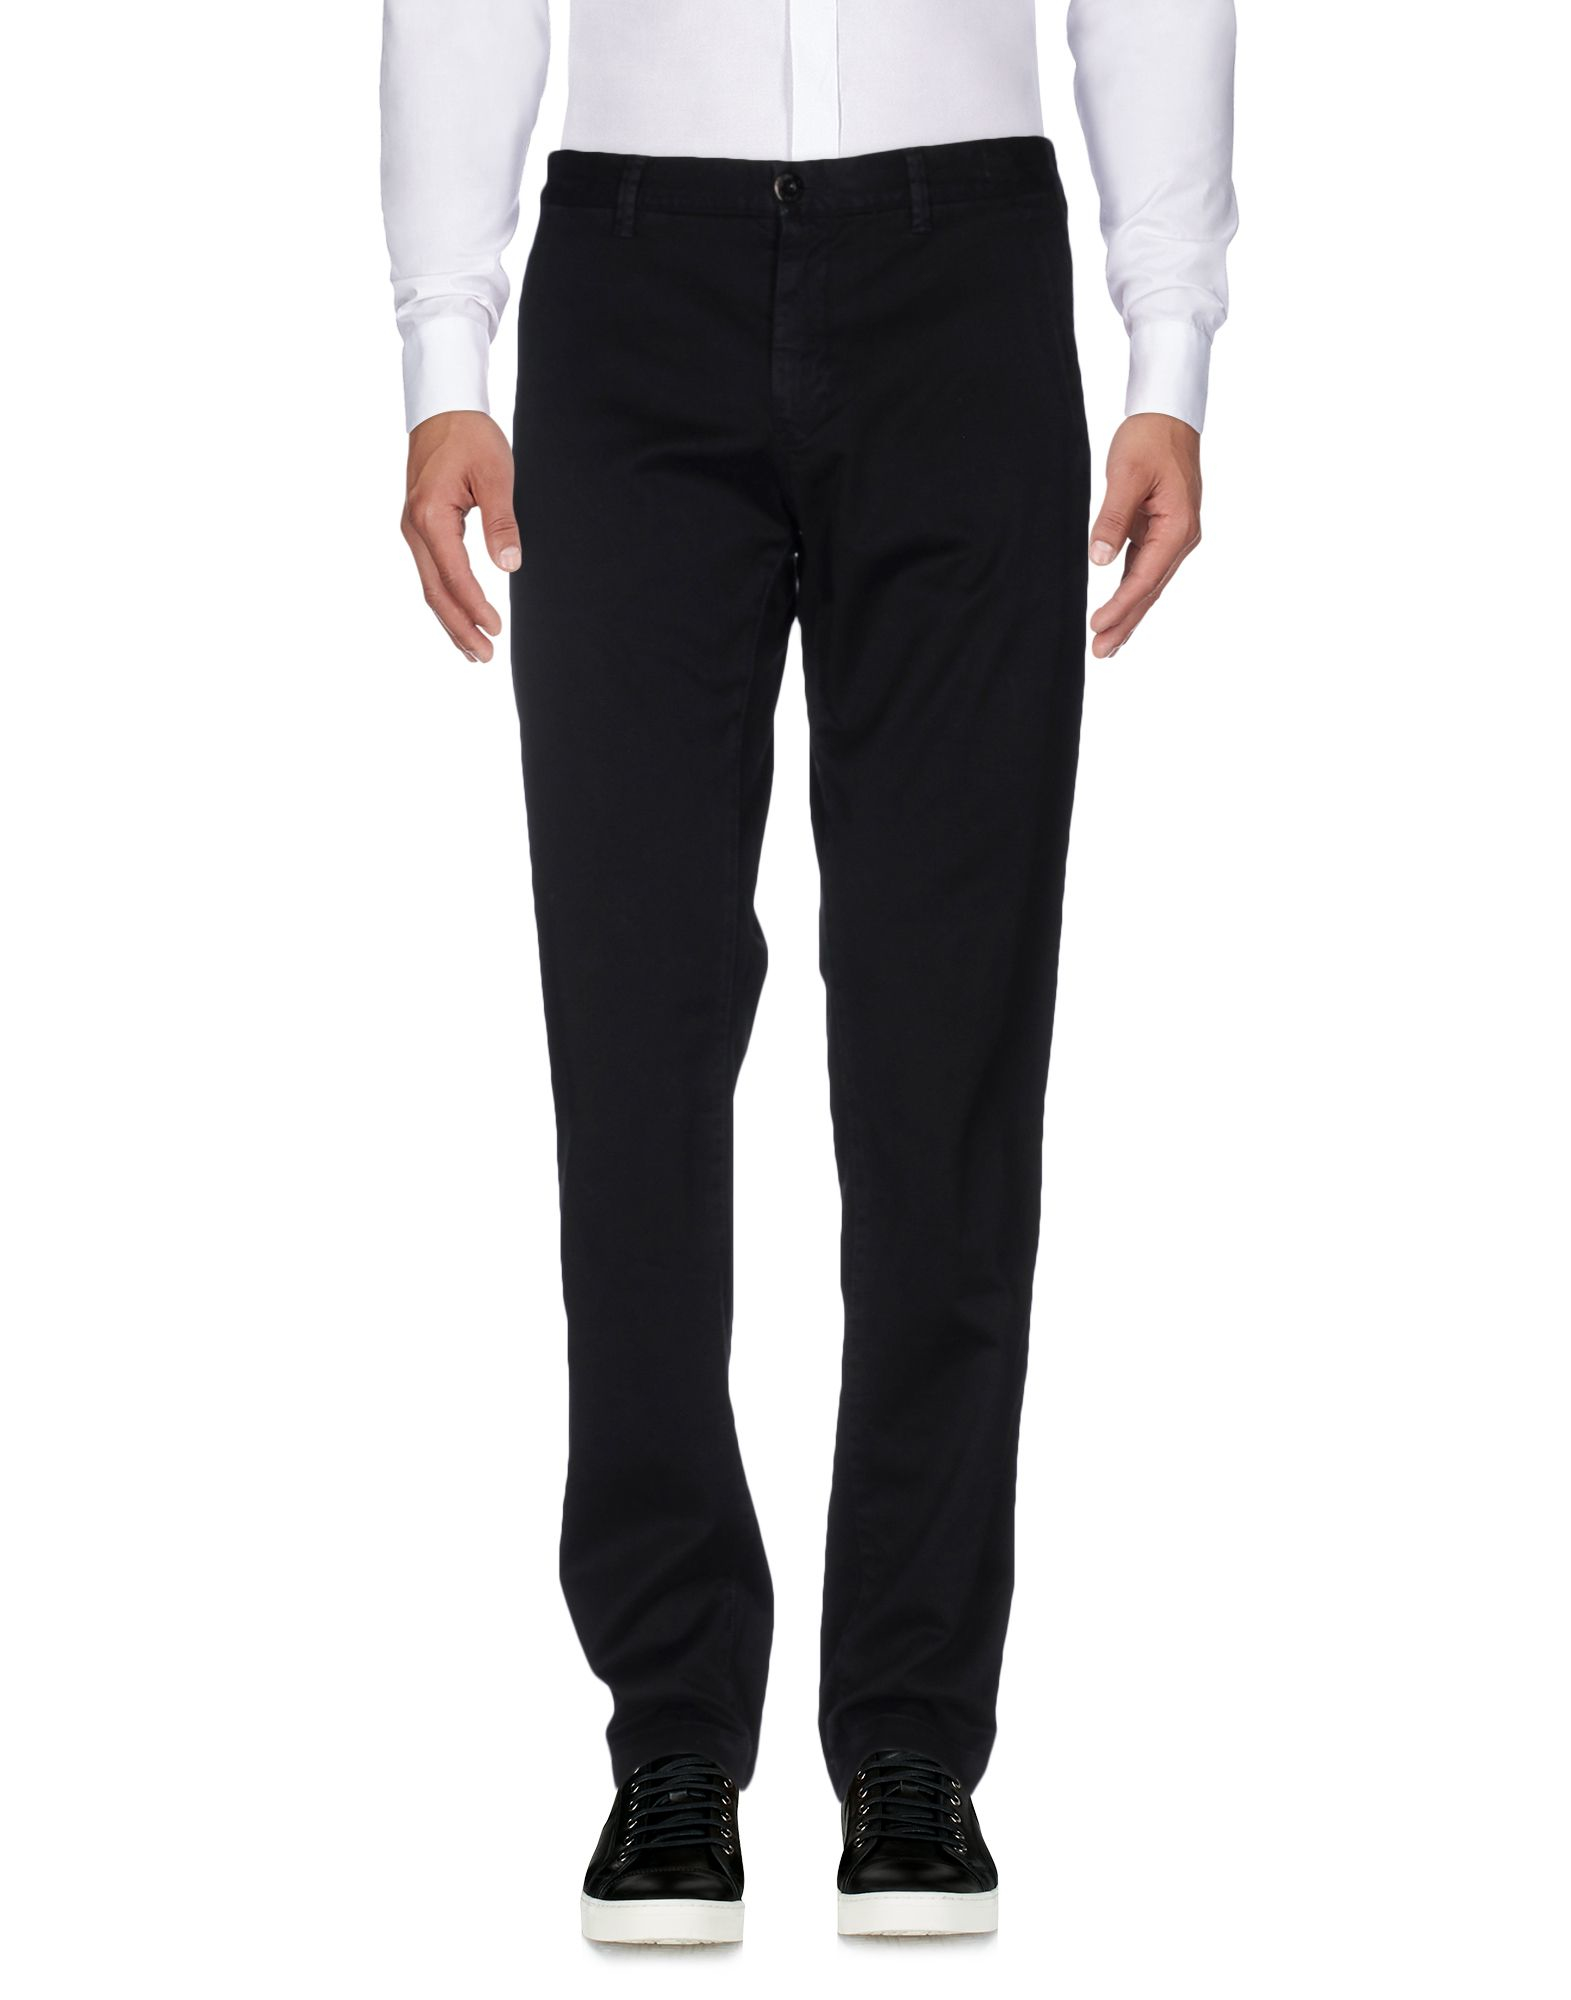 Stone island Casual Pants in Black for Men - Lyst